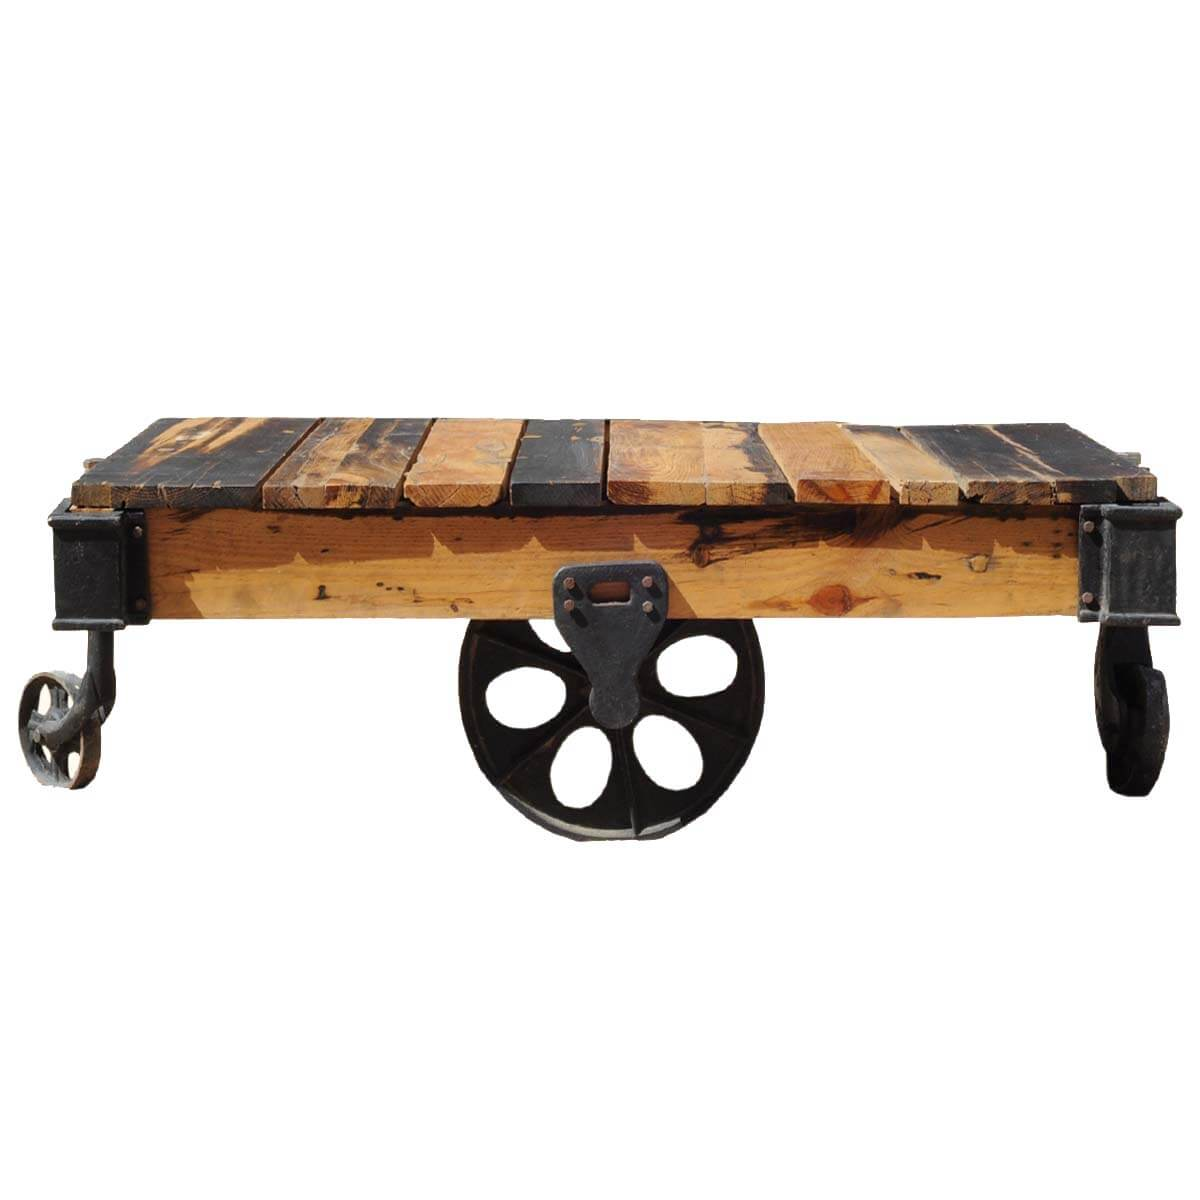 Reclaimed Mill Cart Coffee Table: Rustic Reclaimed Wood Rolling Factory Cart Coffee Table